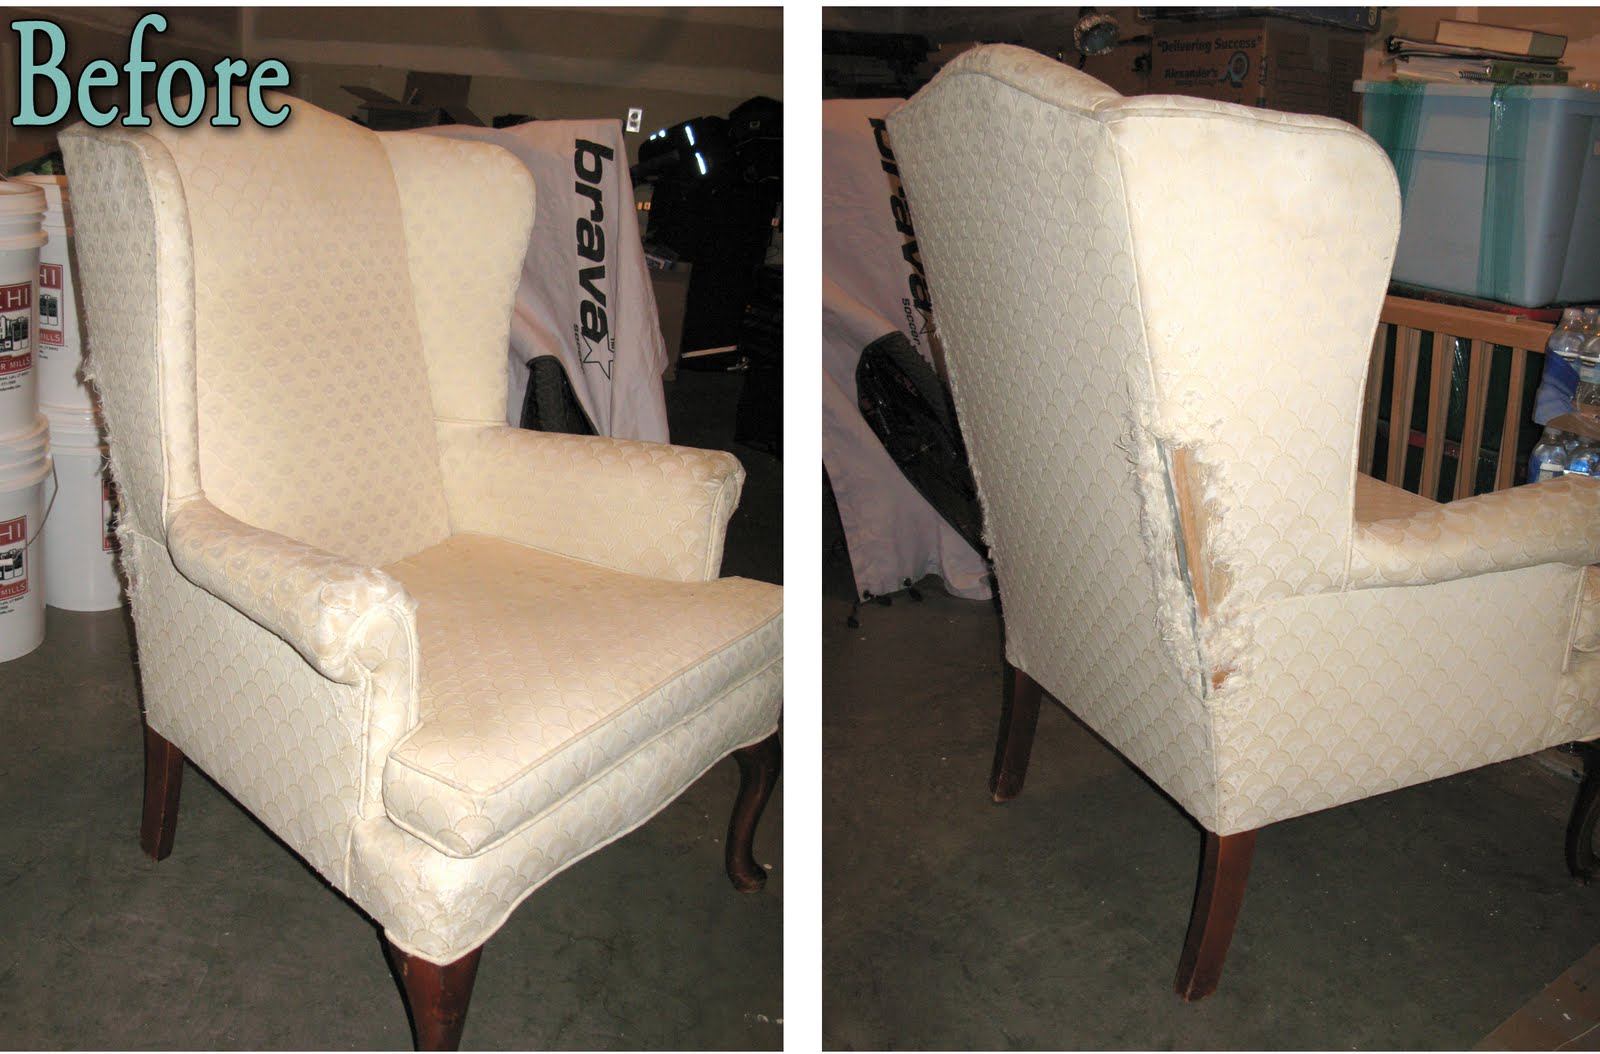 Believe It Or Not, Taking Apart The Chair Is The Most Tedious, Dirtiest,  Time Consuming Part Of Reupholstering. You Will Most Definitely Ruin Your  Manicure, ...